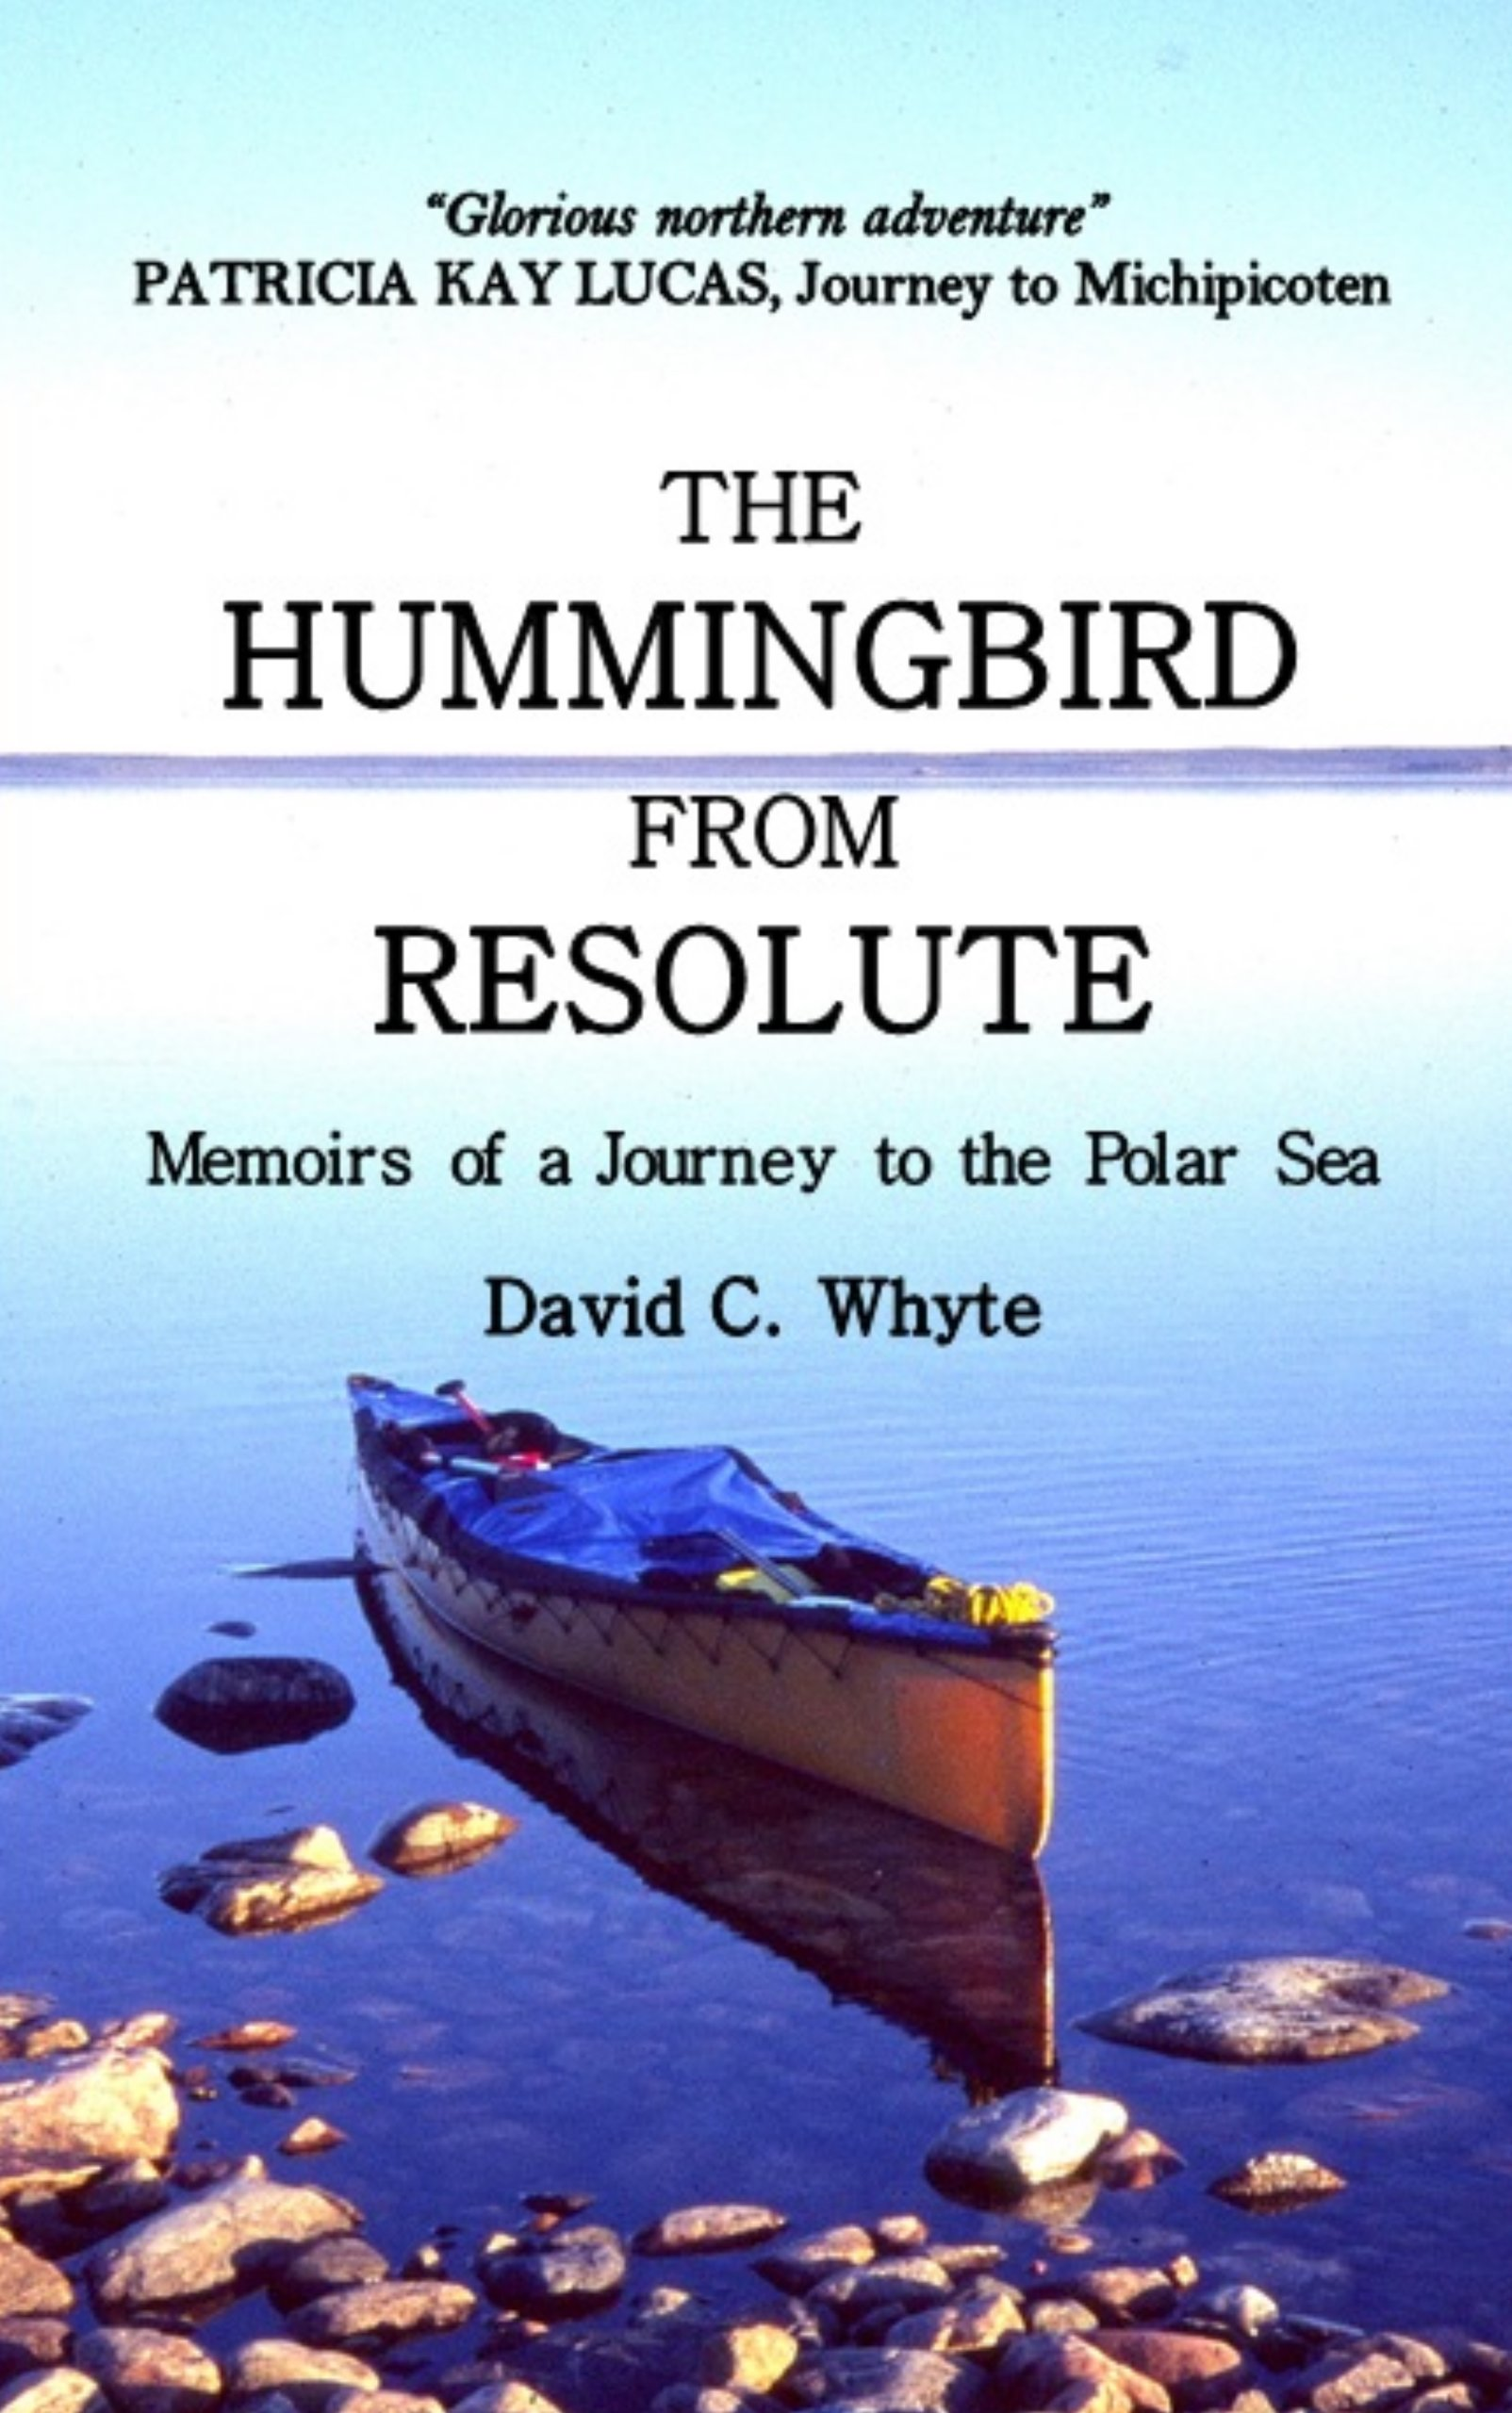 The Hummingbird From Resolute: Memoirs of a Journey to the Polar Sea (English Edition)